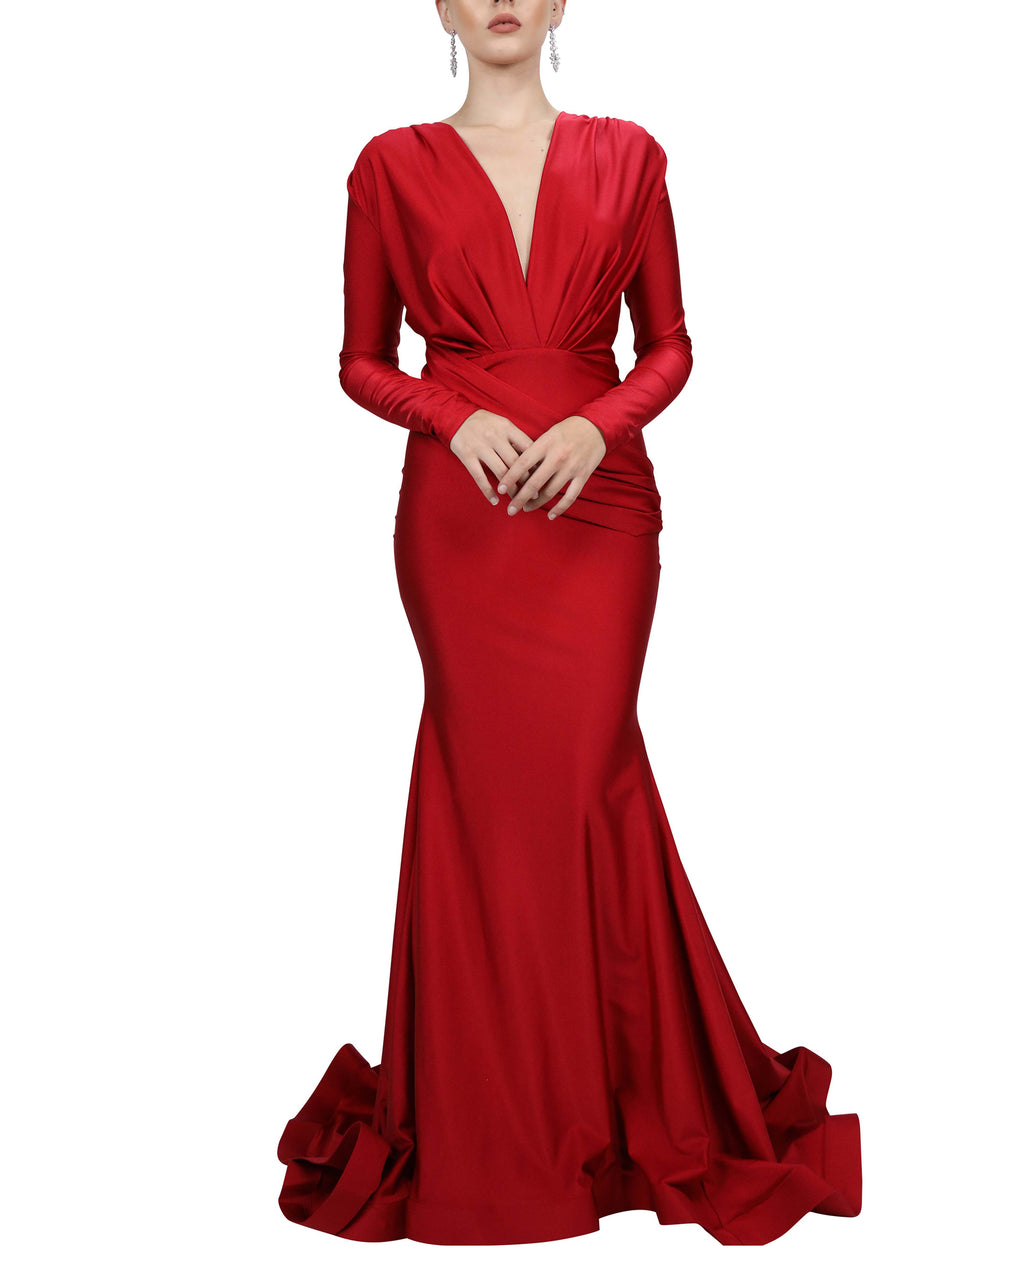 Long Sleeve Jessica Gown - Dark Red